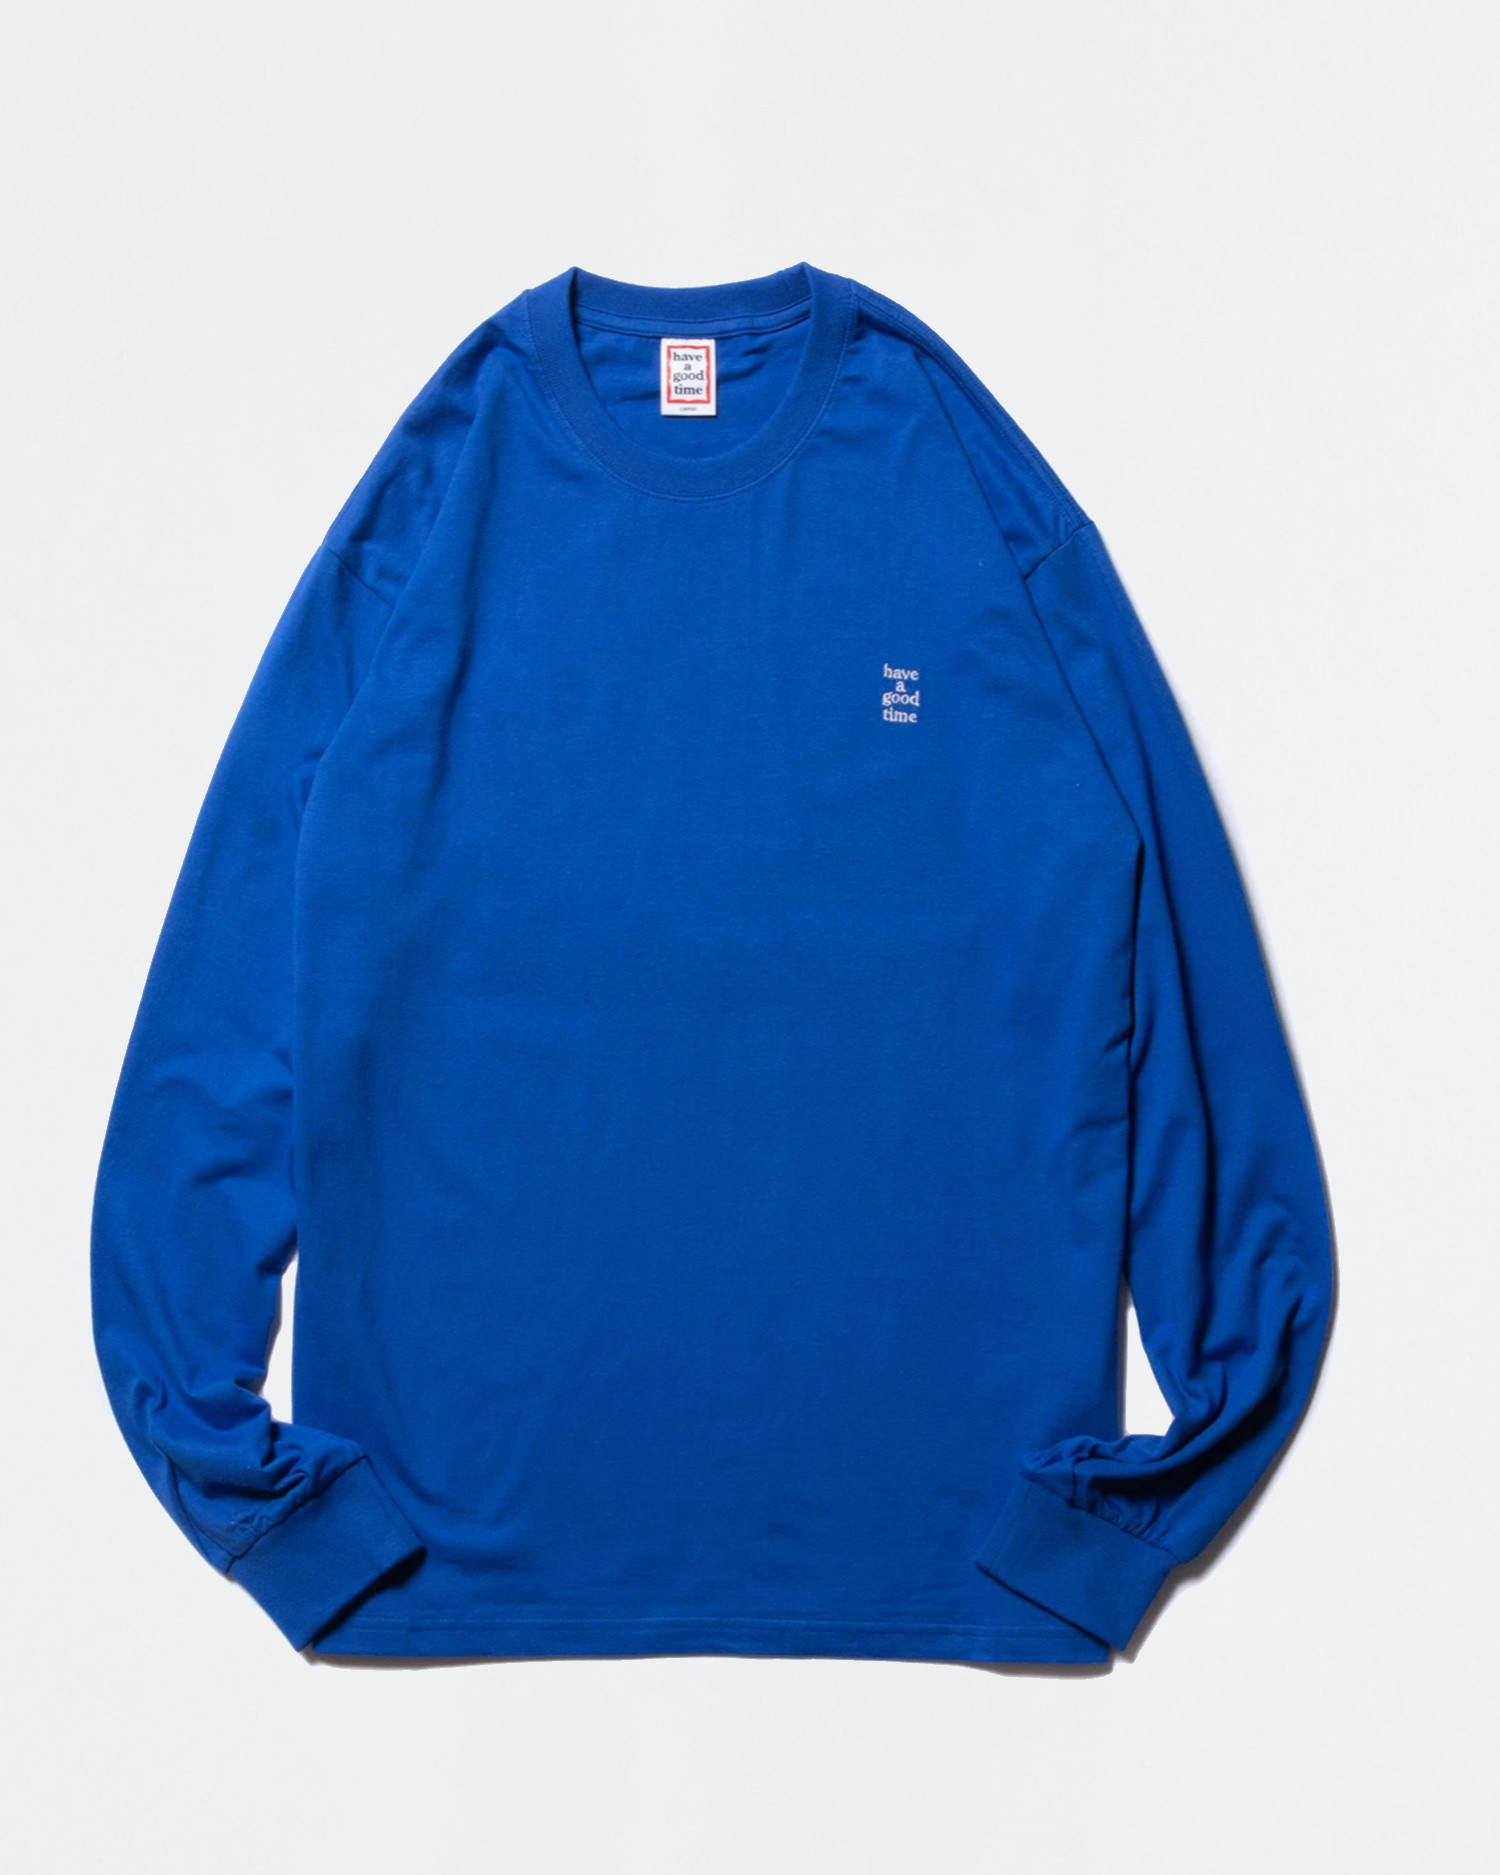 Have A Good TIme Mini Embroidered Logo Longsleeve Tee Cobalt Blue